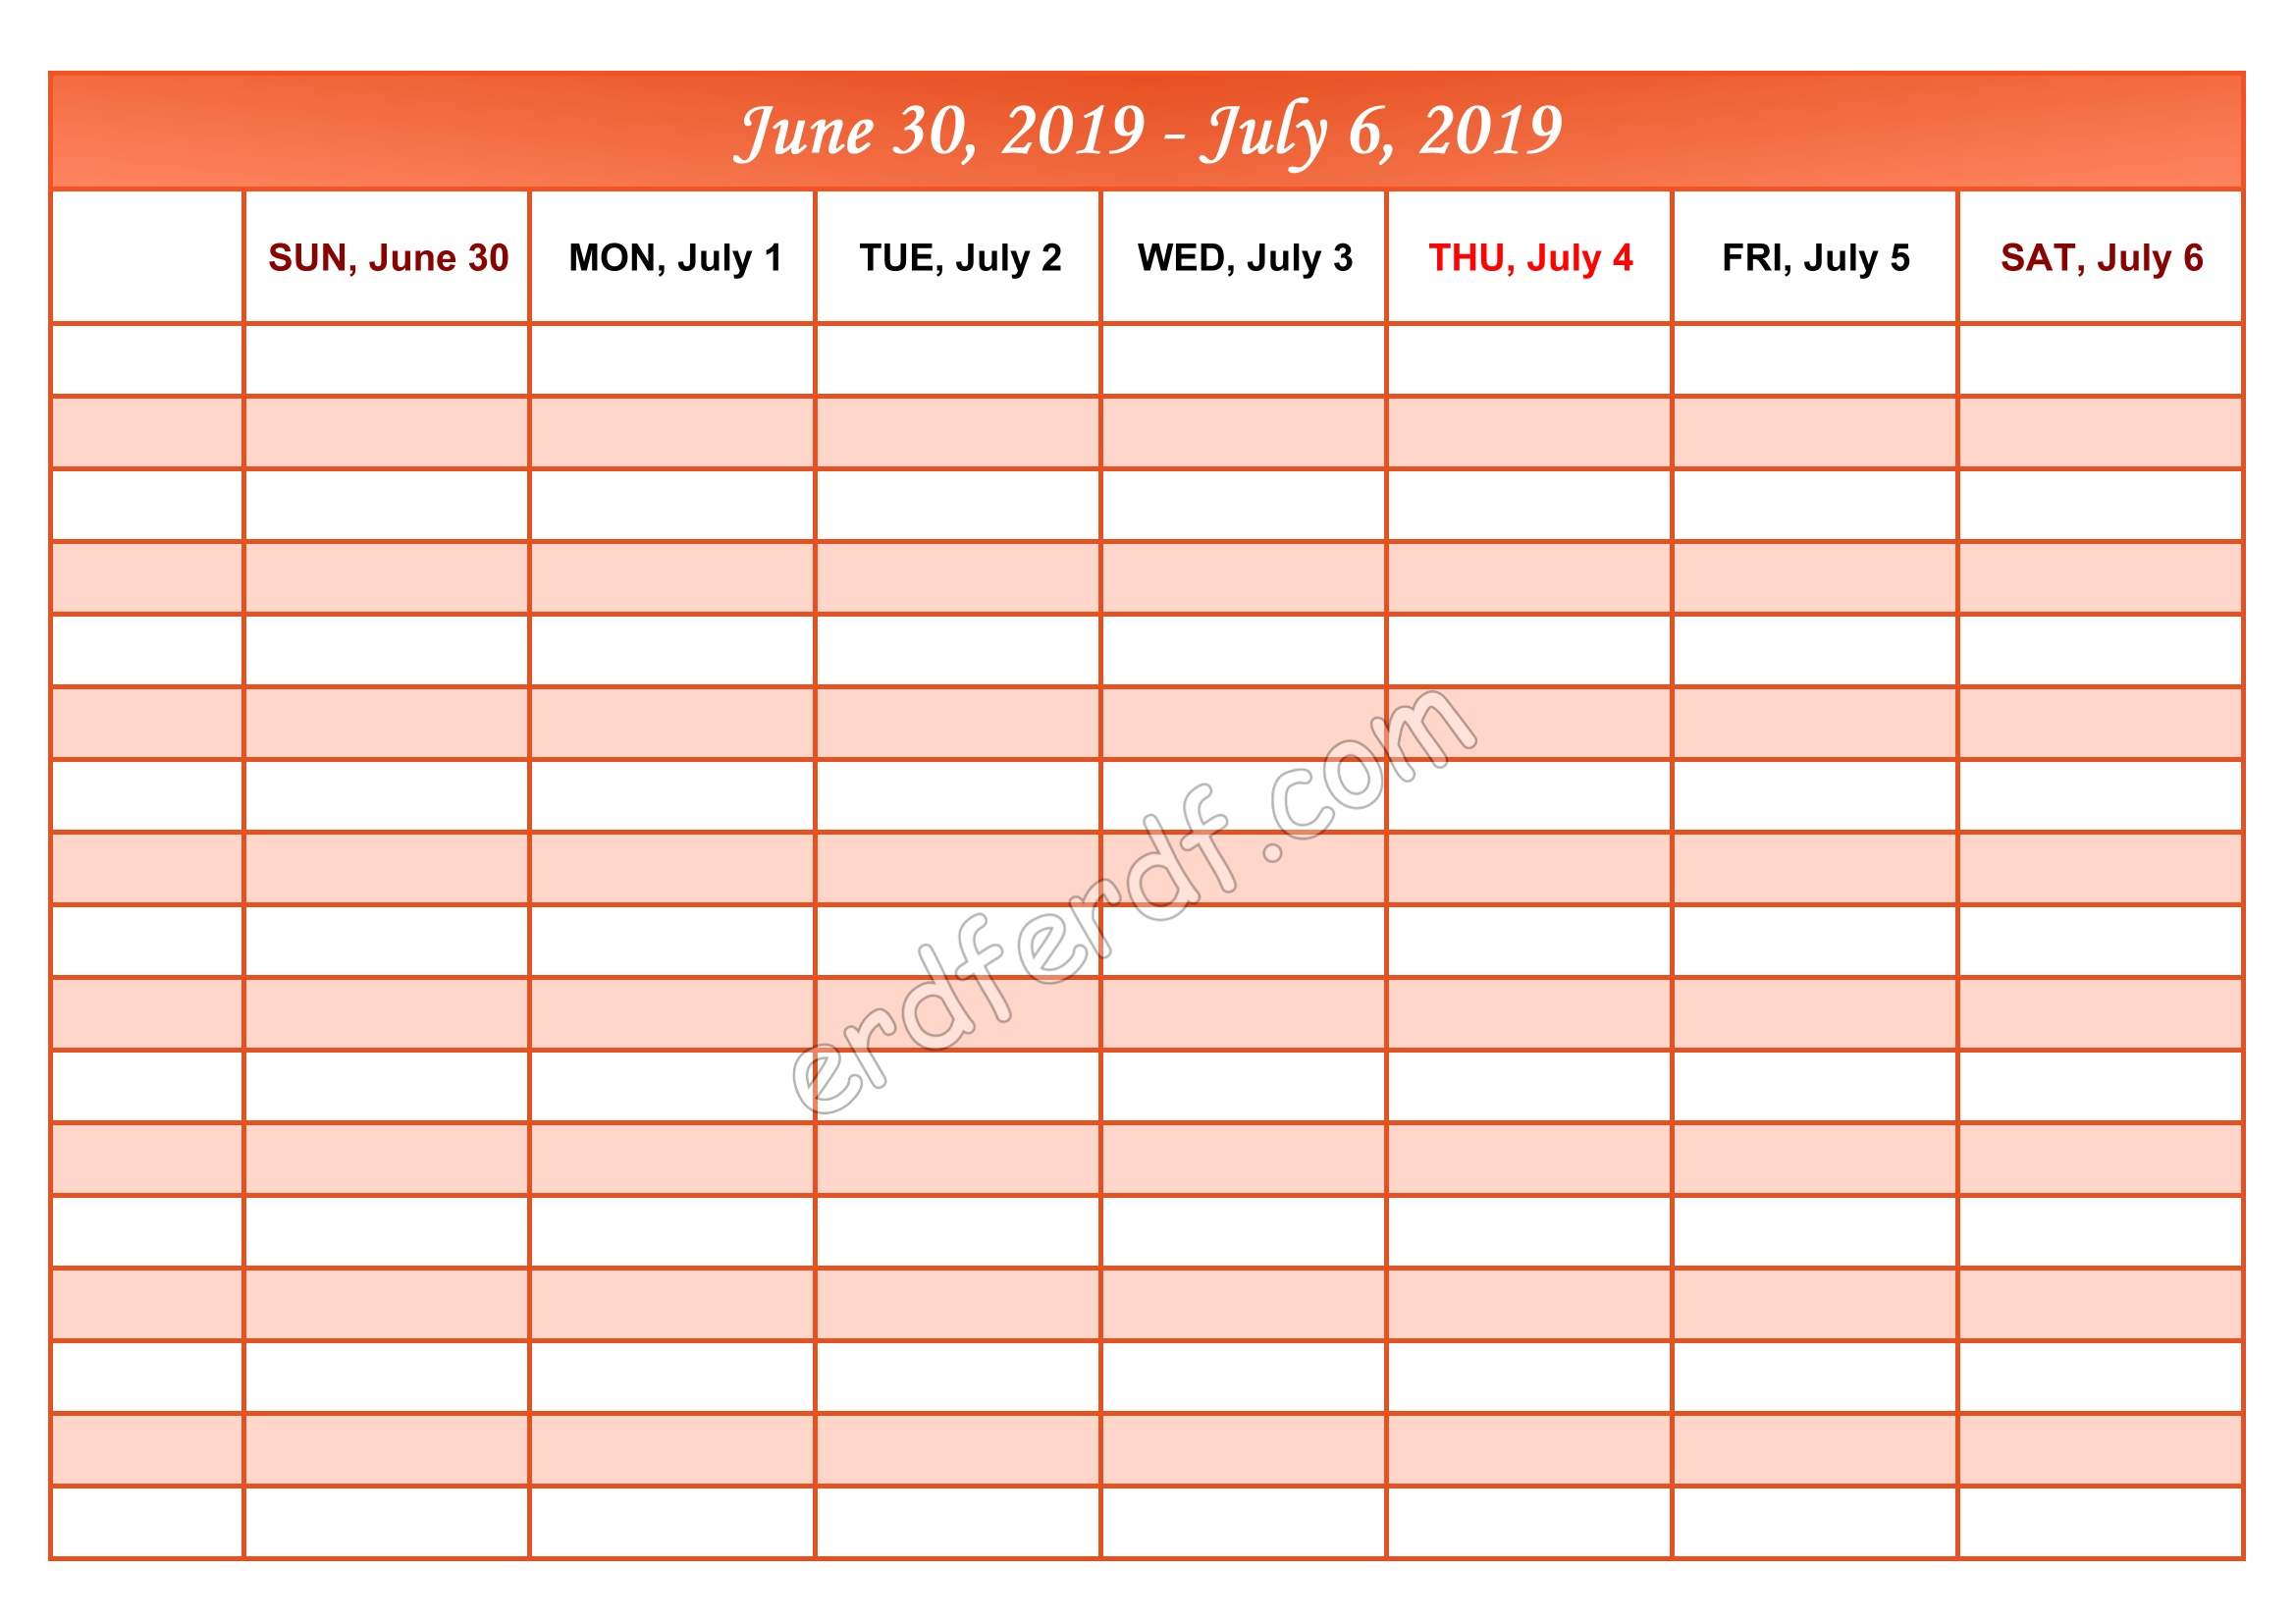 7 July Printable Calendar 2019 Weekly Month by Month